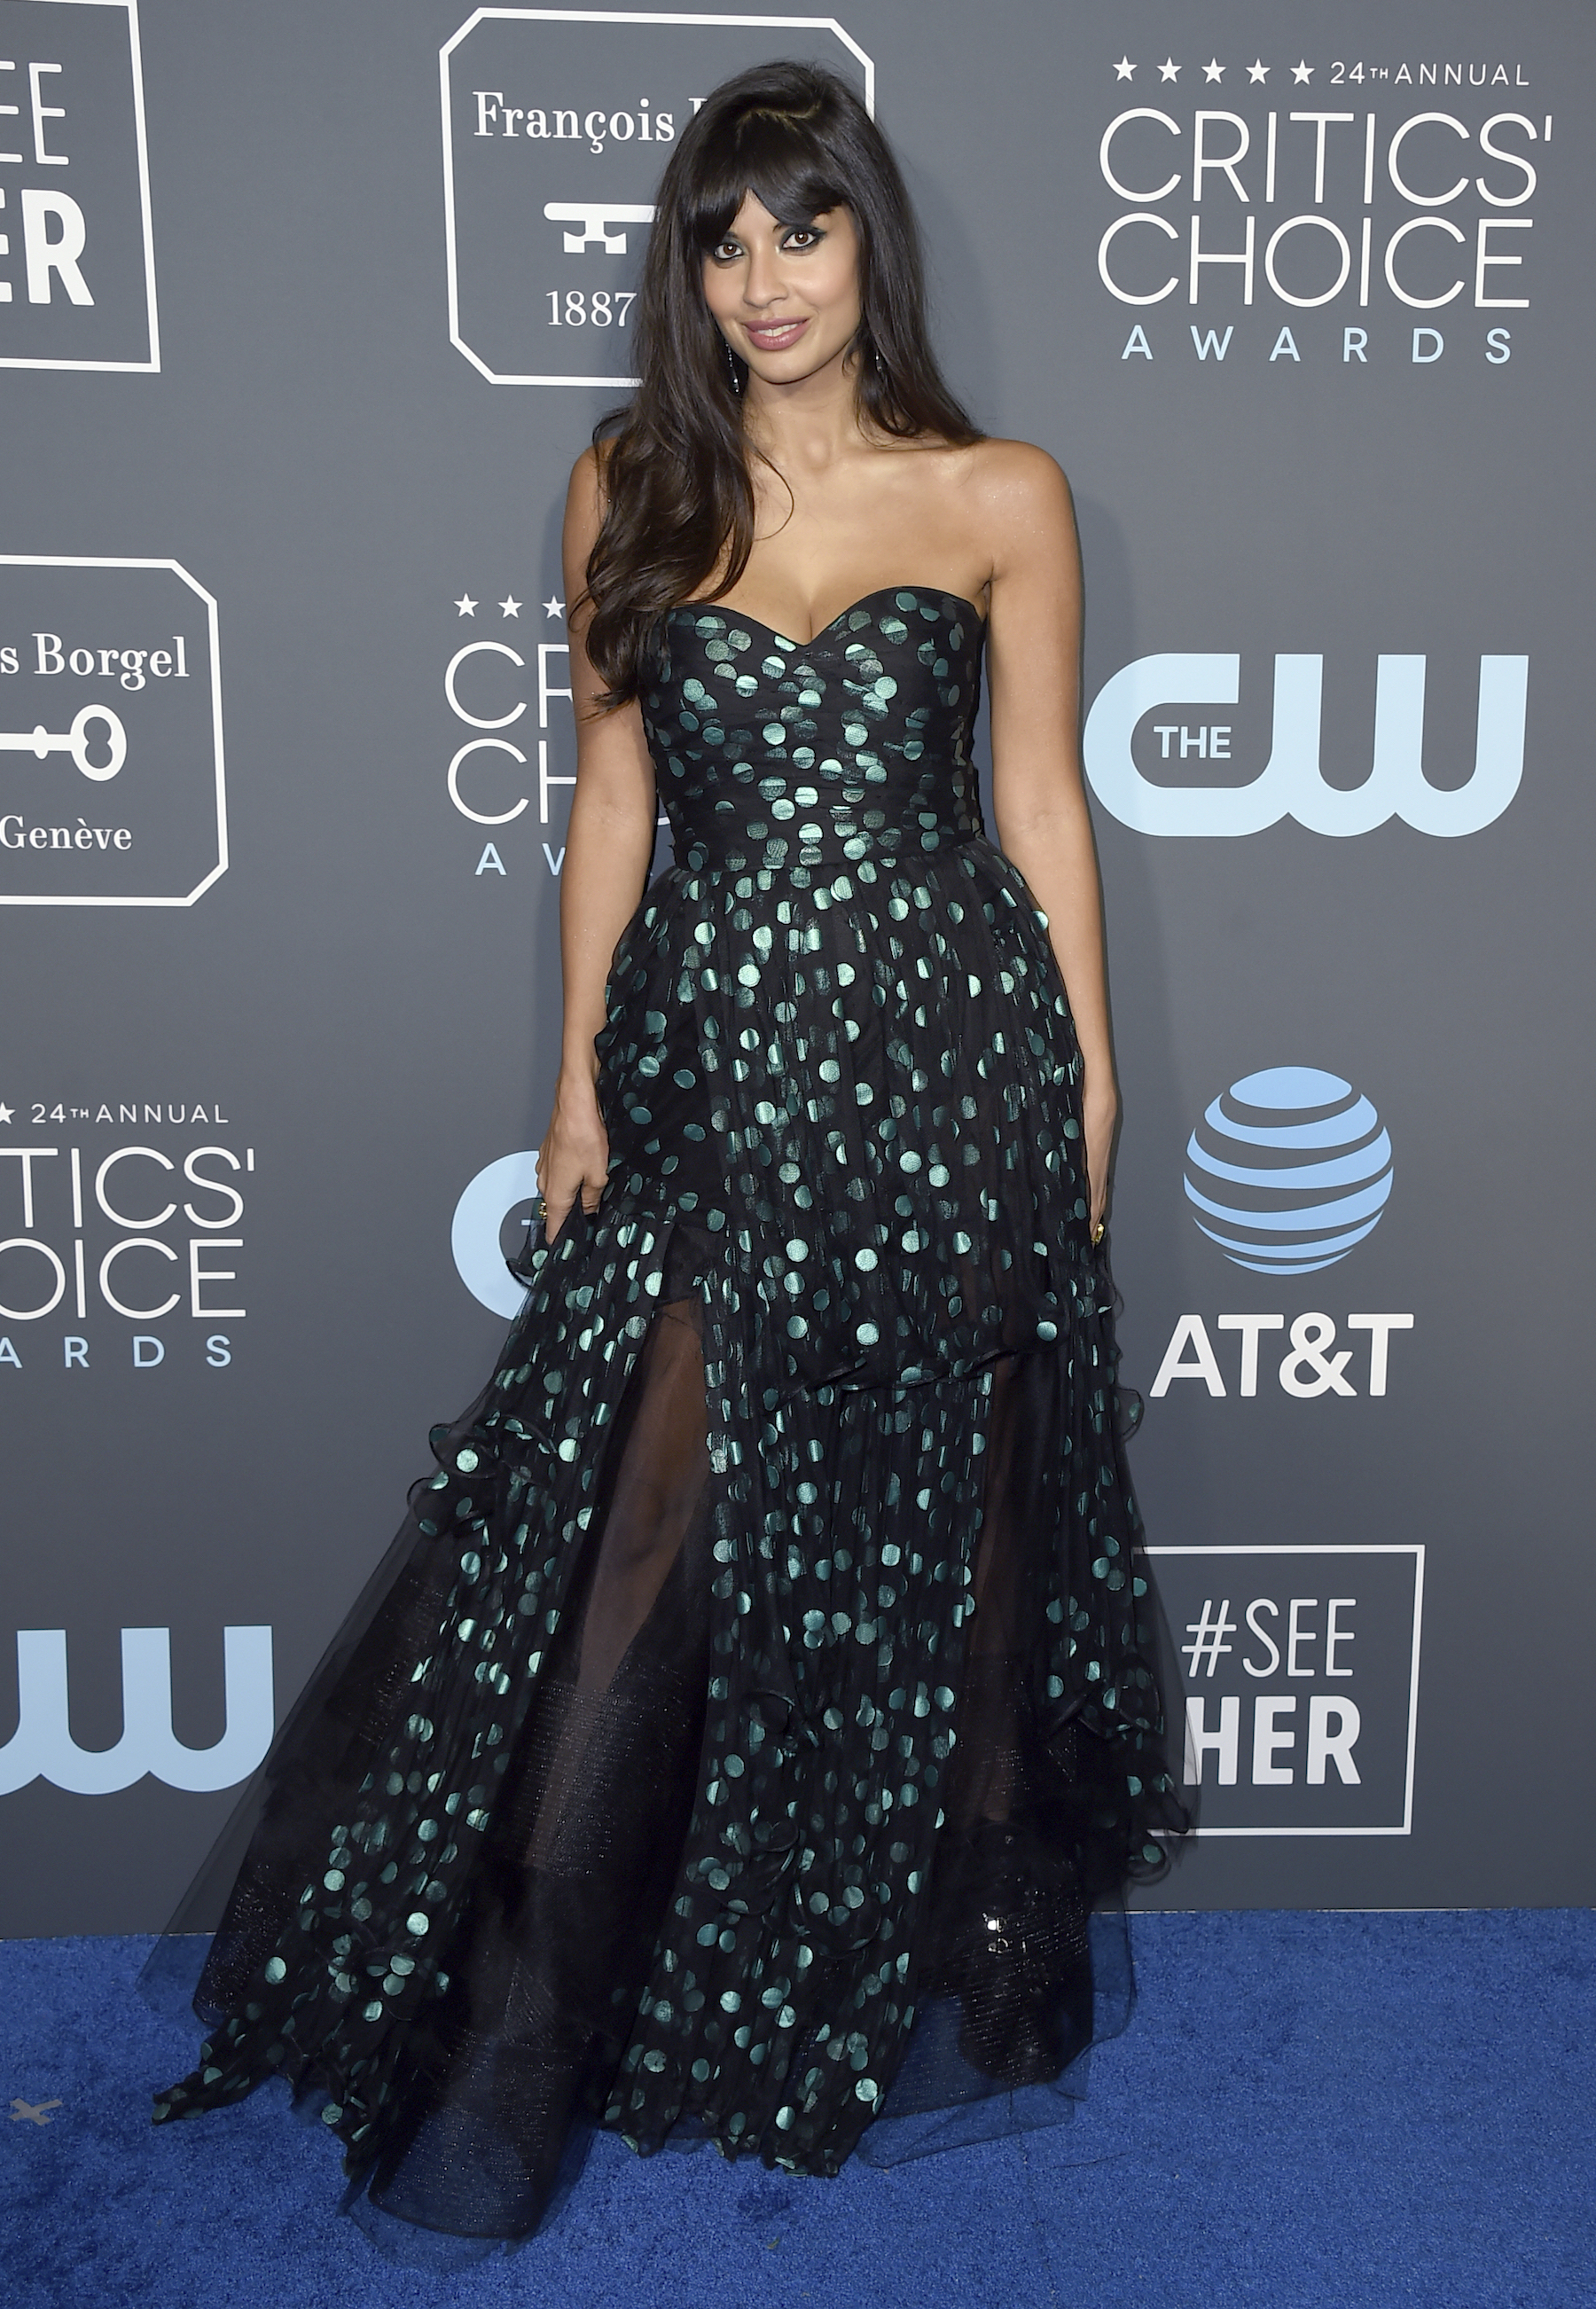 "<div class=""meta image-caption""><div class=""origin-logo origin-image ap""><span>AP</span></div><span class=""caption-text"">Jameela Jamil arrives at the 24th annual Critics' Choice Awards on Sunday, Jan. 13, 2019, at the Barker Hangar in Santa Monica, Calif. (Jordan Strauss/Invision/AP)</span></div>"